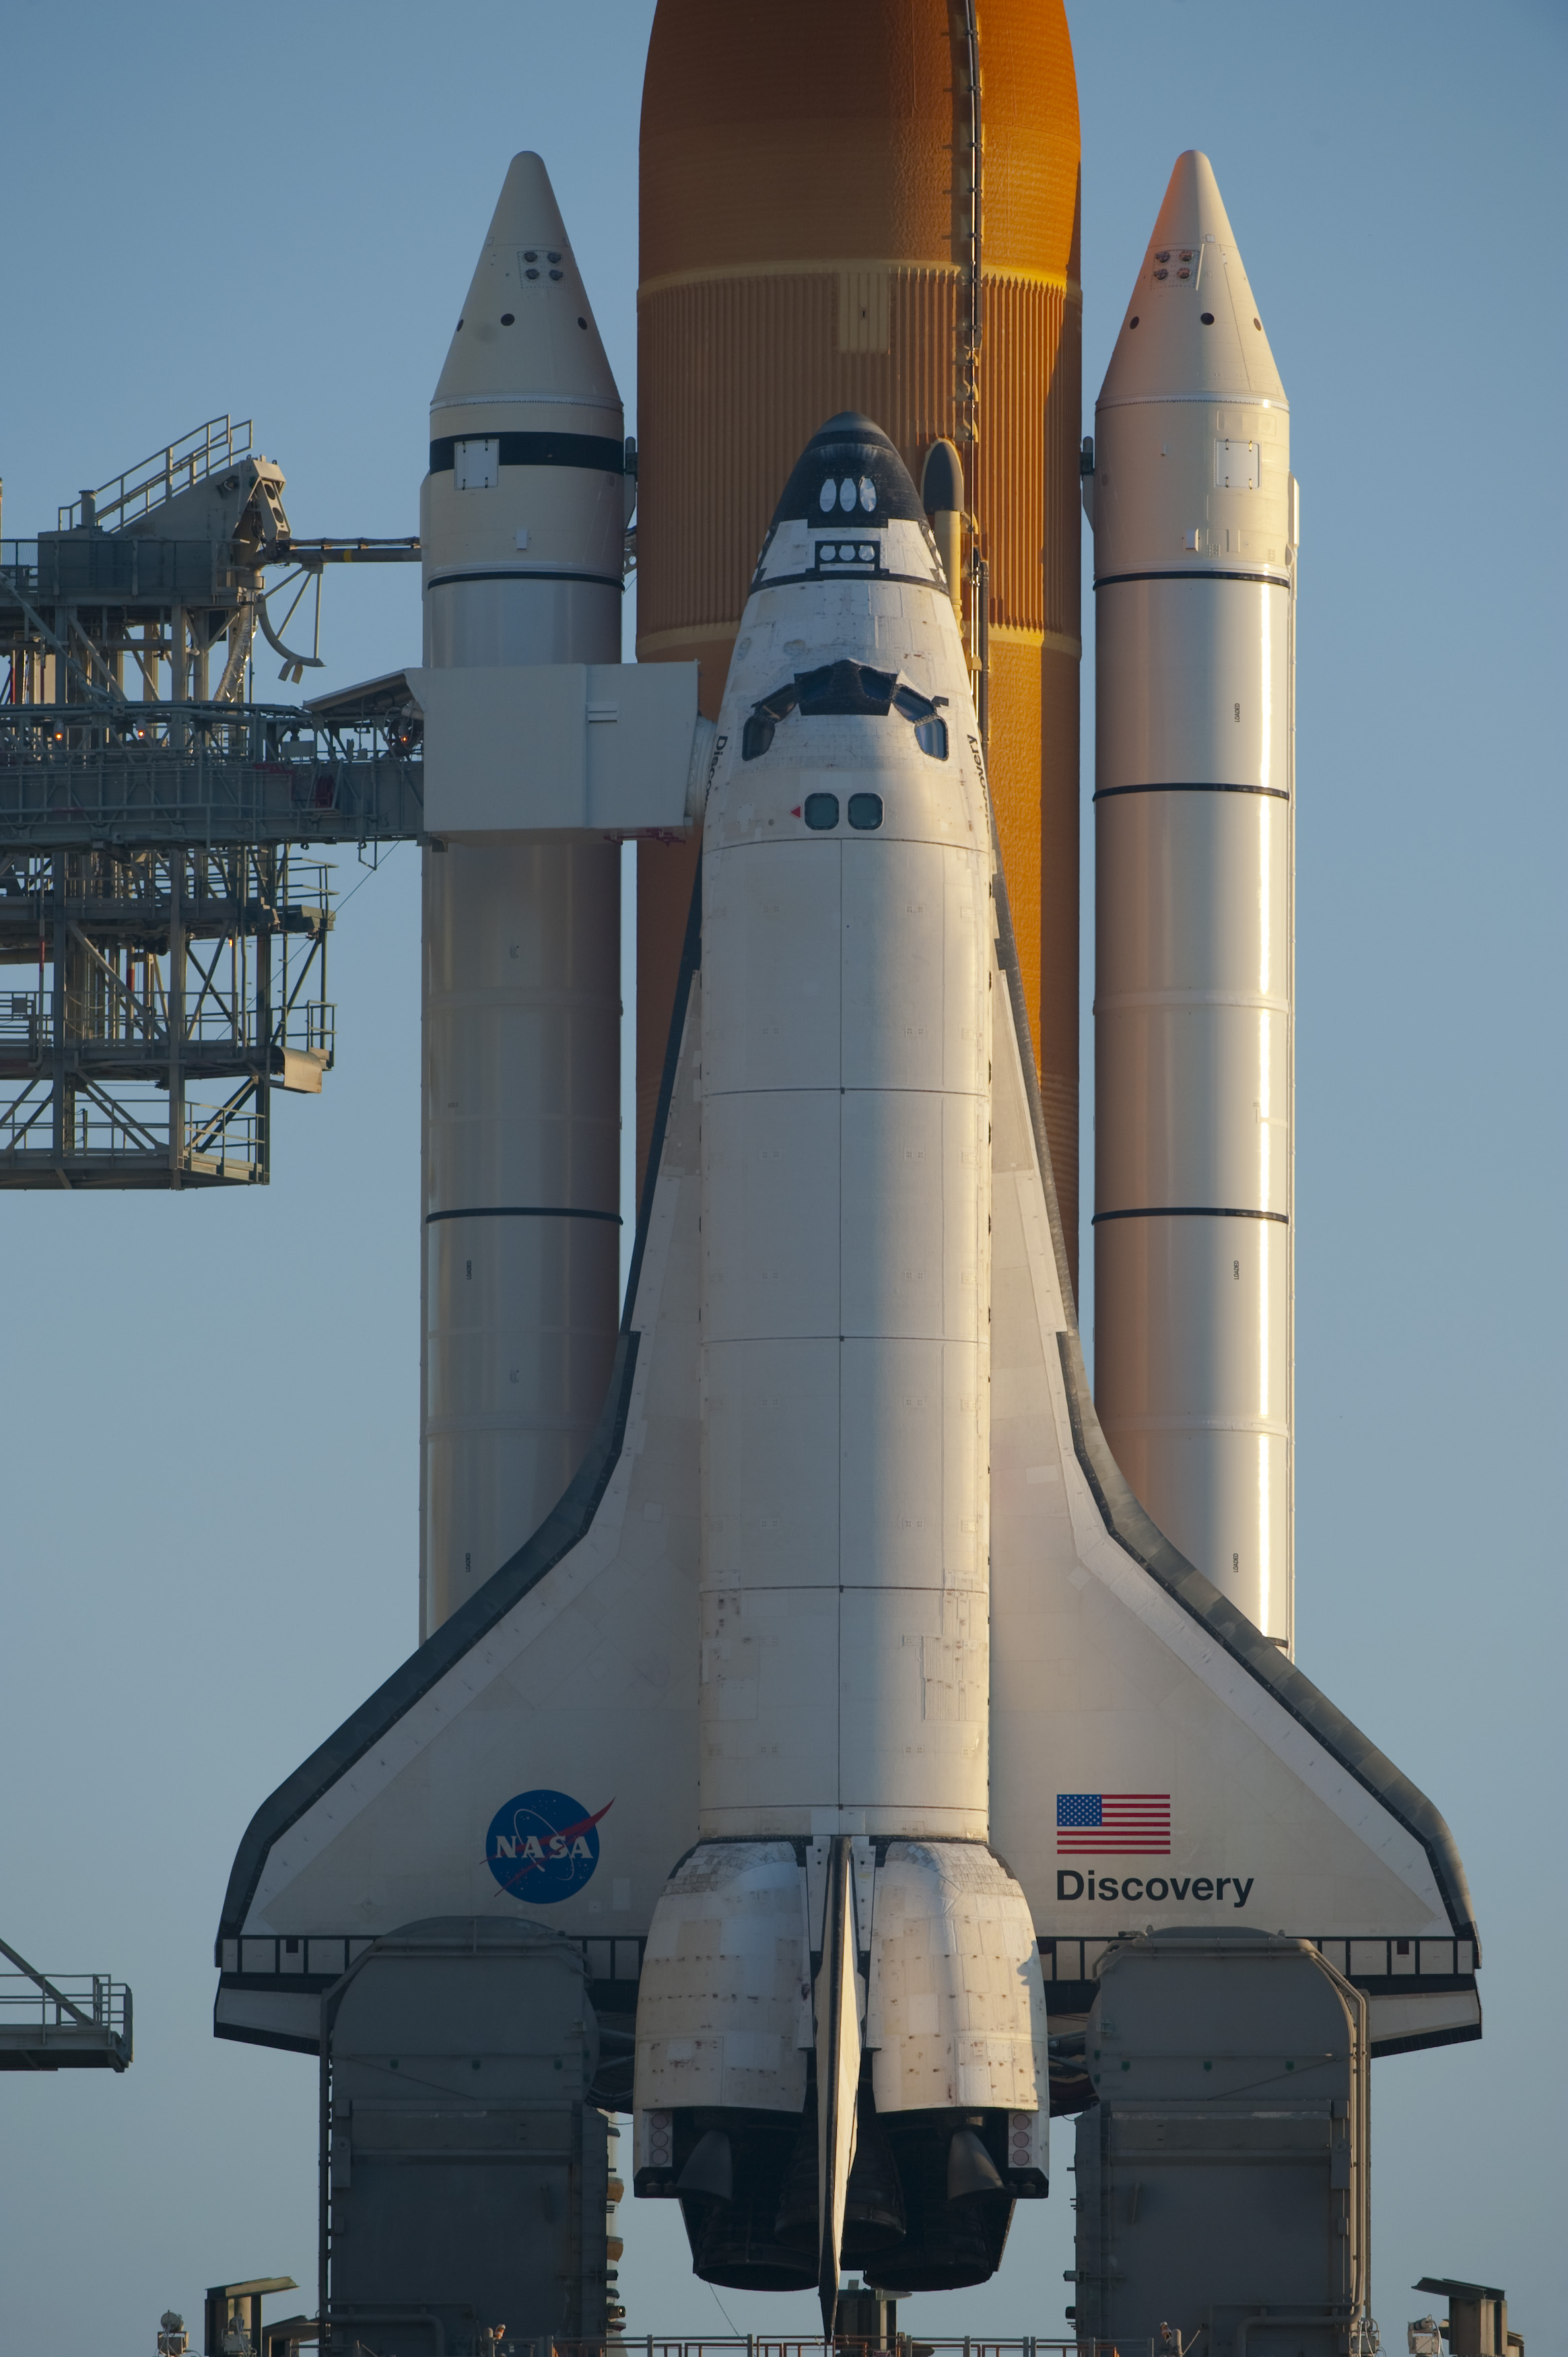 us space shuttle discovery - photo #24